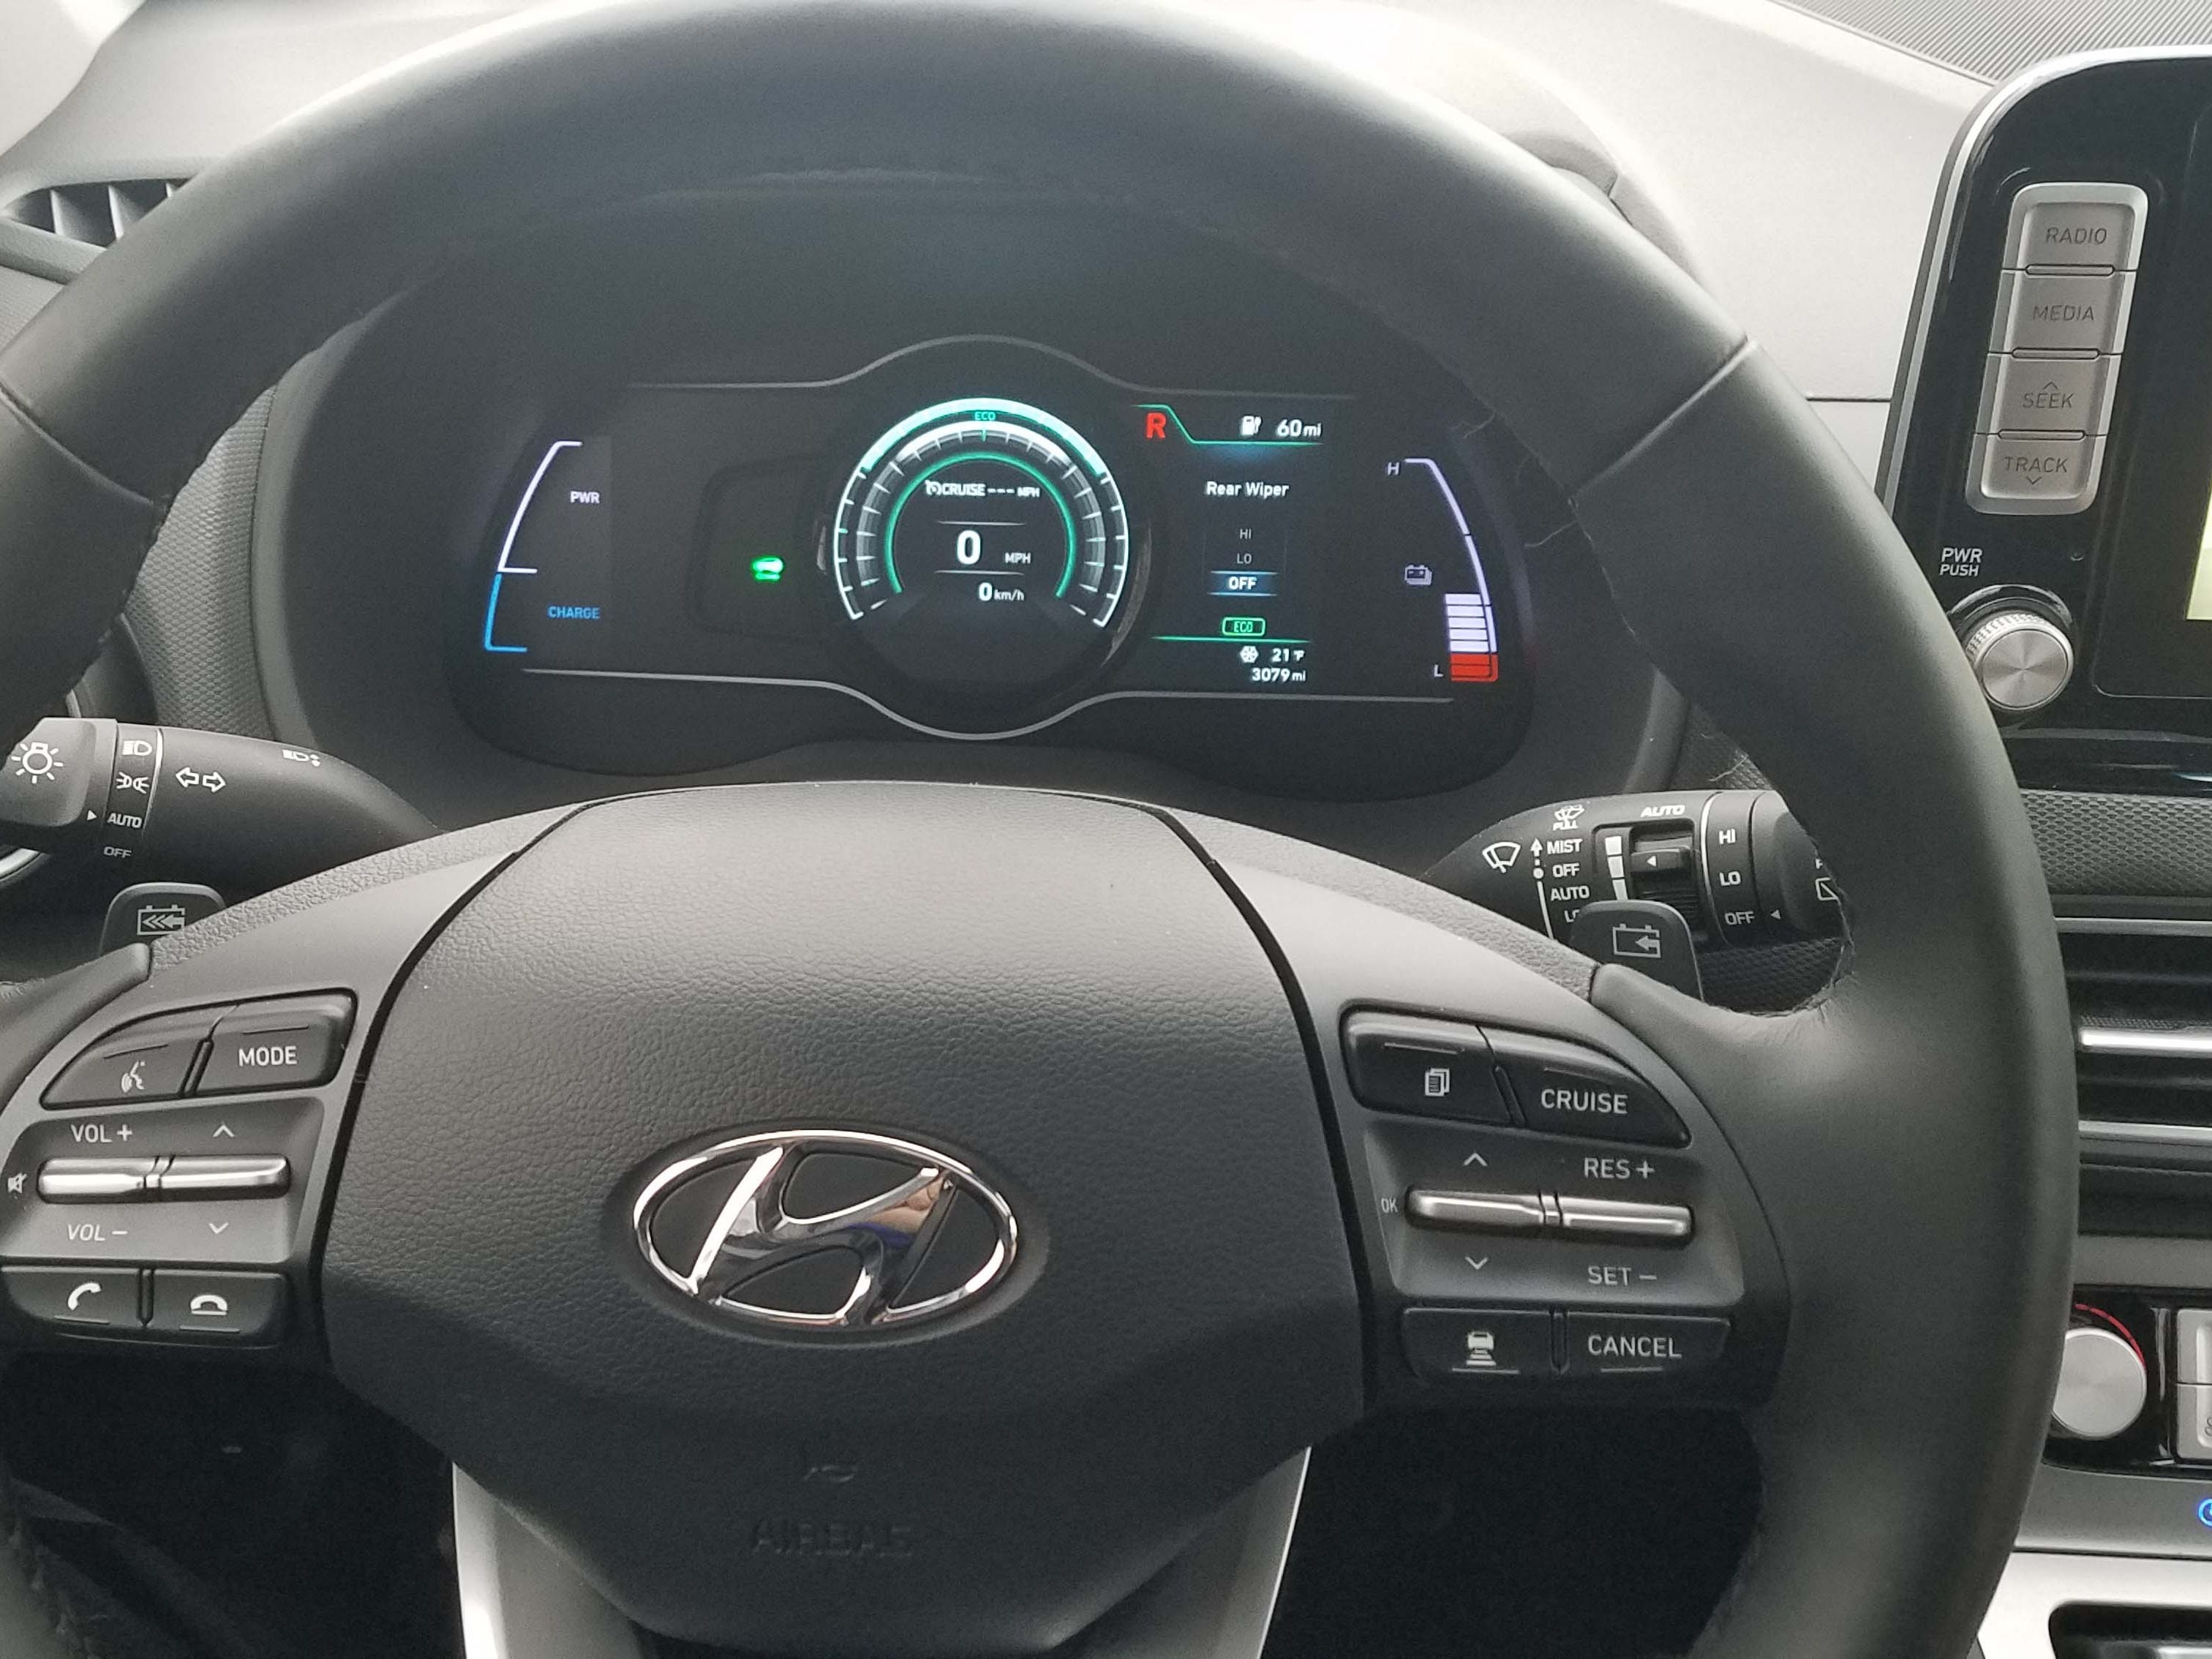 The 2019 Hyundai Kona EV is nicely appointed inside with a configurable instrument display and loads of features, from Adaptive Cruise Control to smartphone app compatibility.